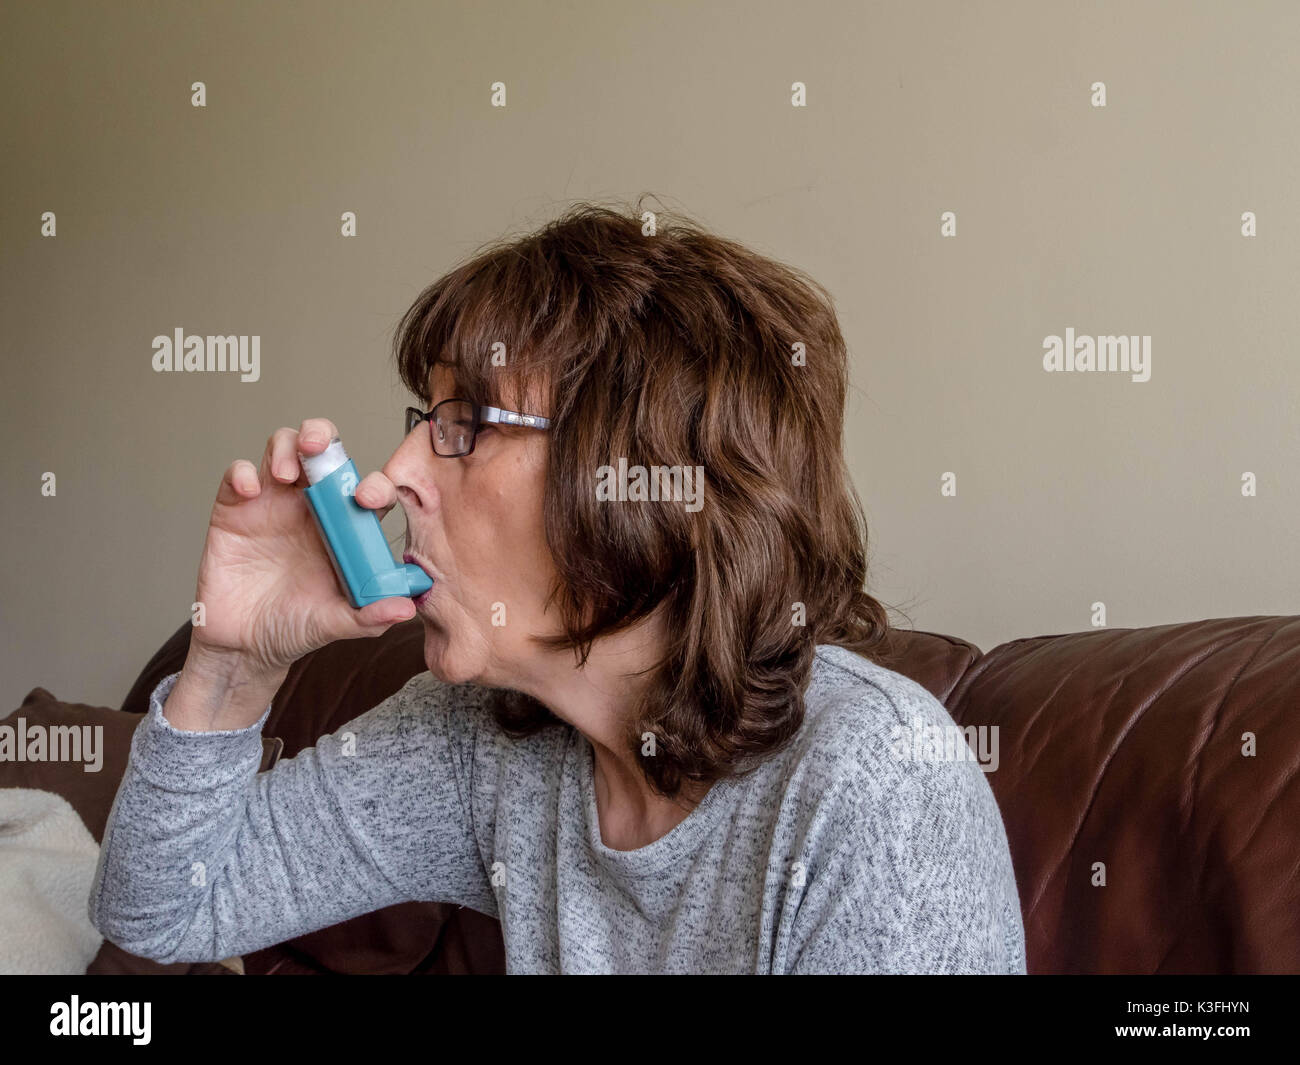 Mature senior lady using medical asthma aid to assisit with breathing - Stock Image